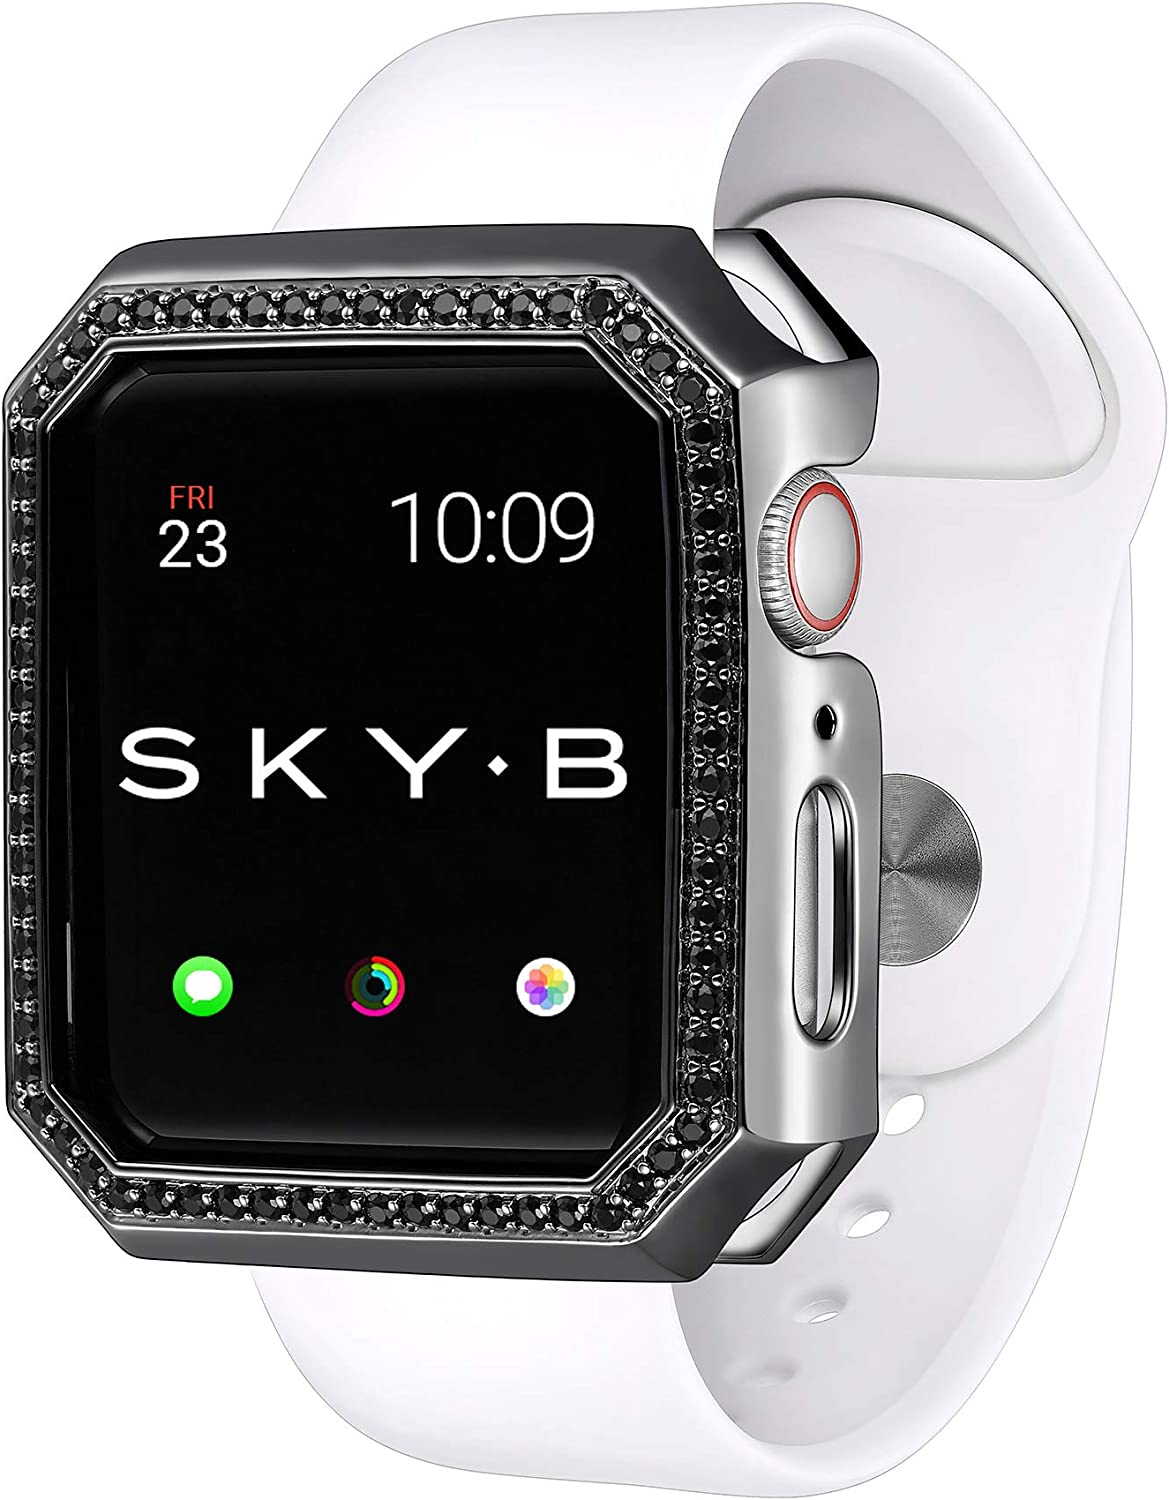 SKYB Deco Halo Black Protective Jewelry Watch Case Ser for Apple Ranking TOP10 Popular shop is the lowest price challenge